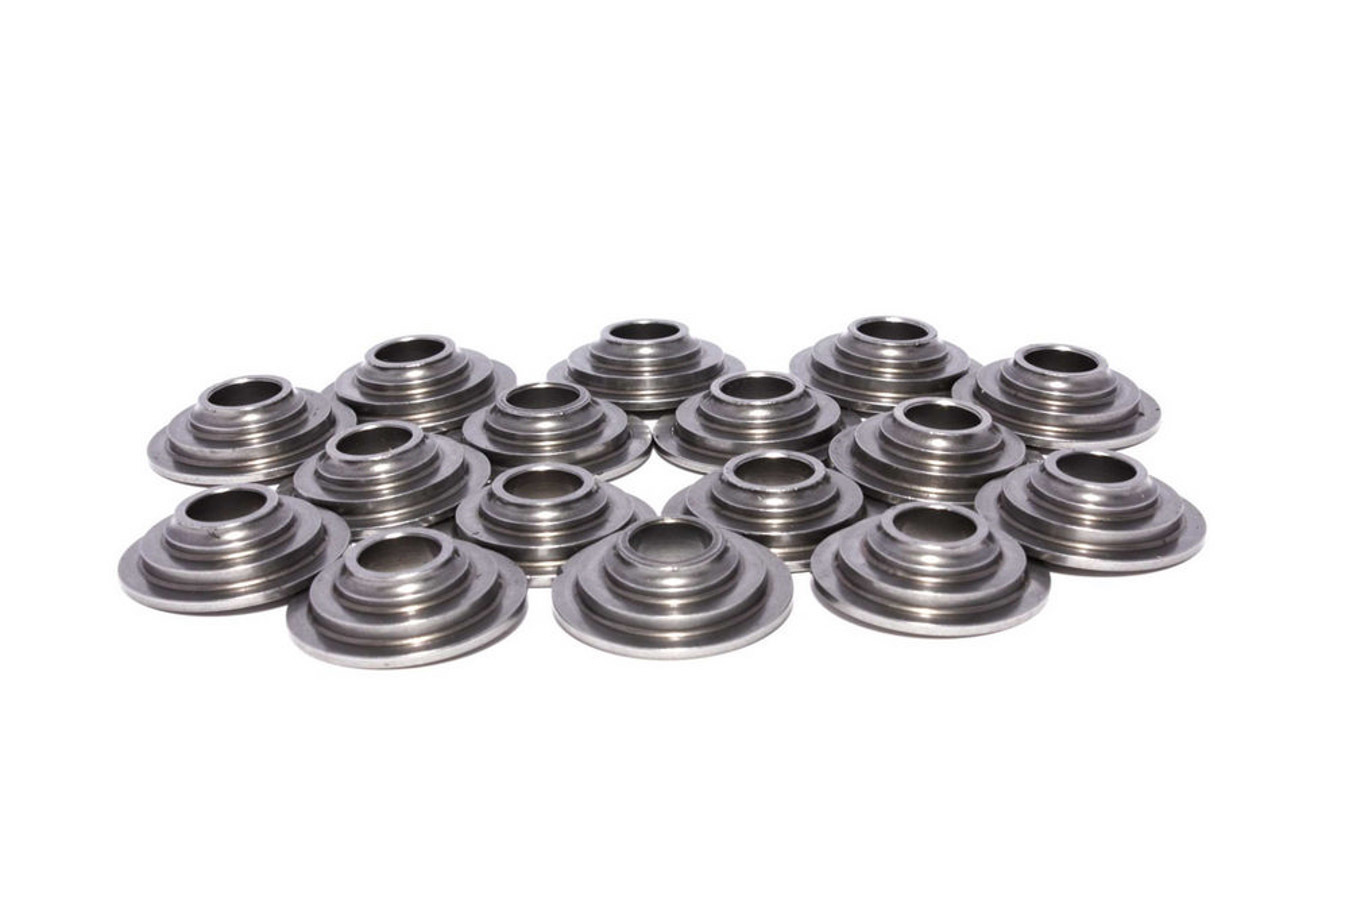 Comp Cams 1779-16 Valve Spring Retainer, 7 Degree, 0.910 in / 0.646 in OD Steps, 1.290 in Dual Spring, Steel, Set of 16